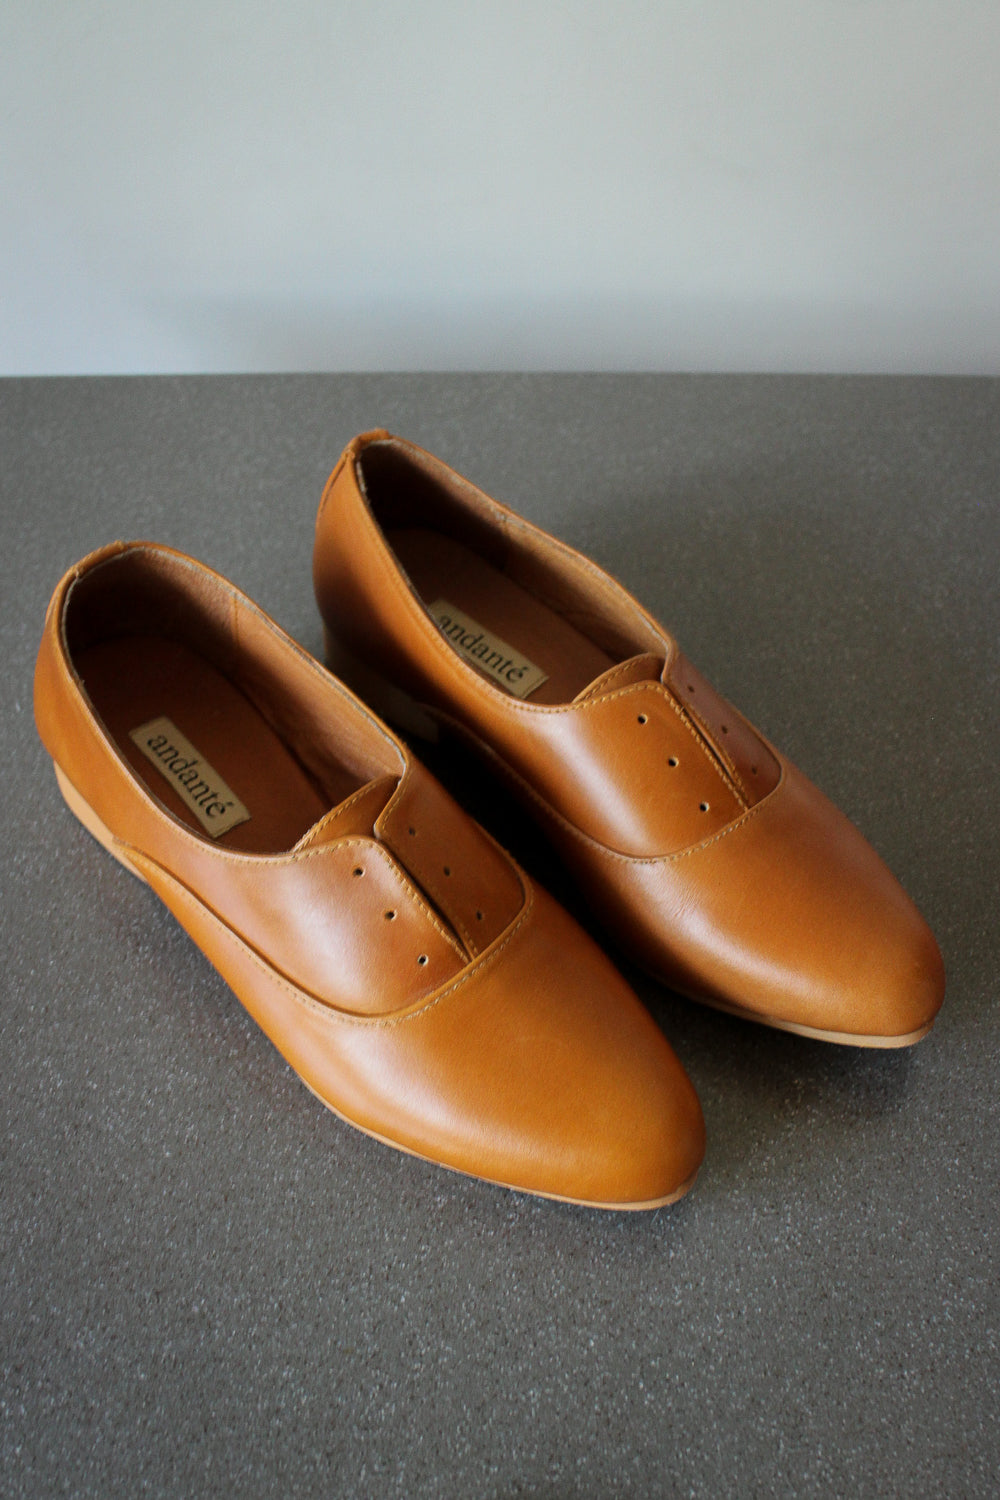 Balmore Oxford in Tan (size 8)